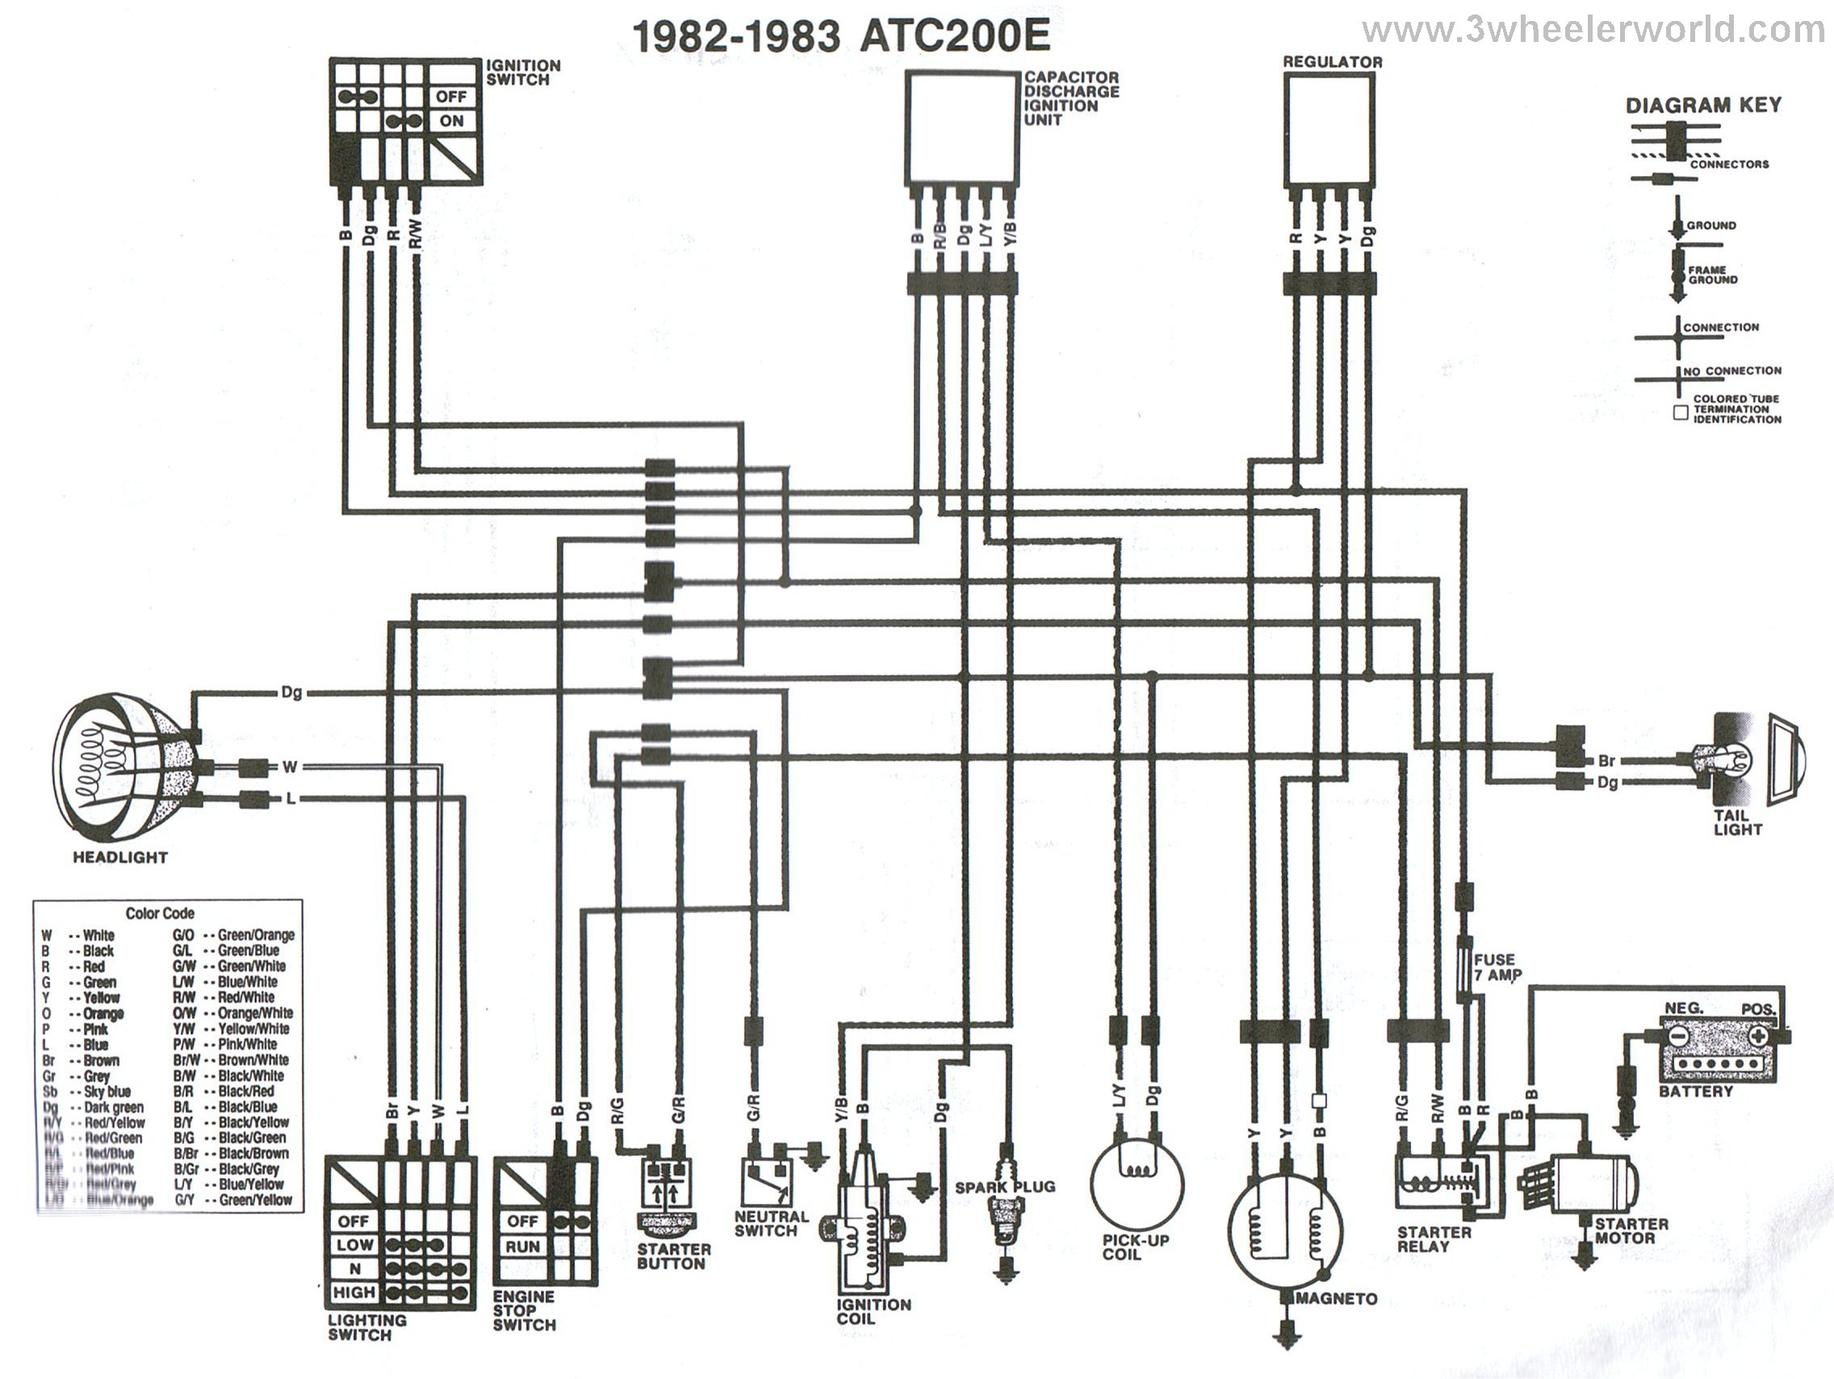 Marvellous Marshin Atv 250 Wiring Diagram Pictures - Best Image ...